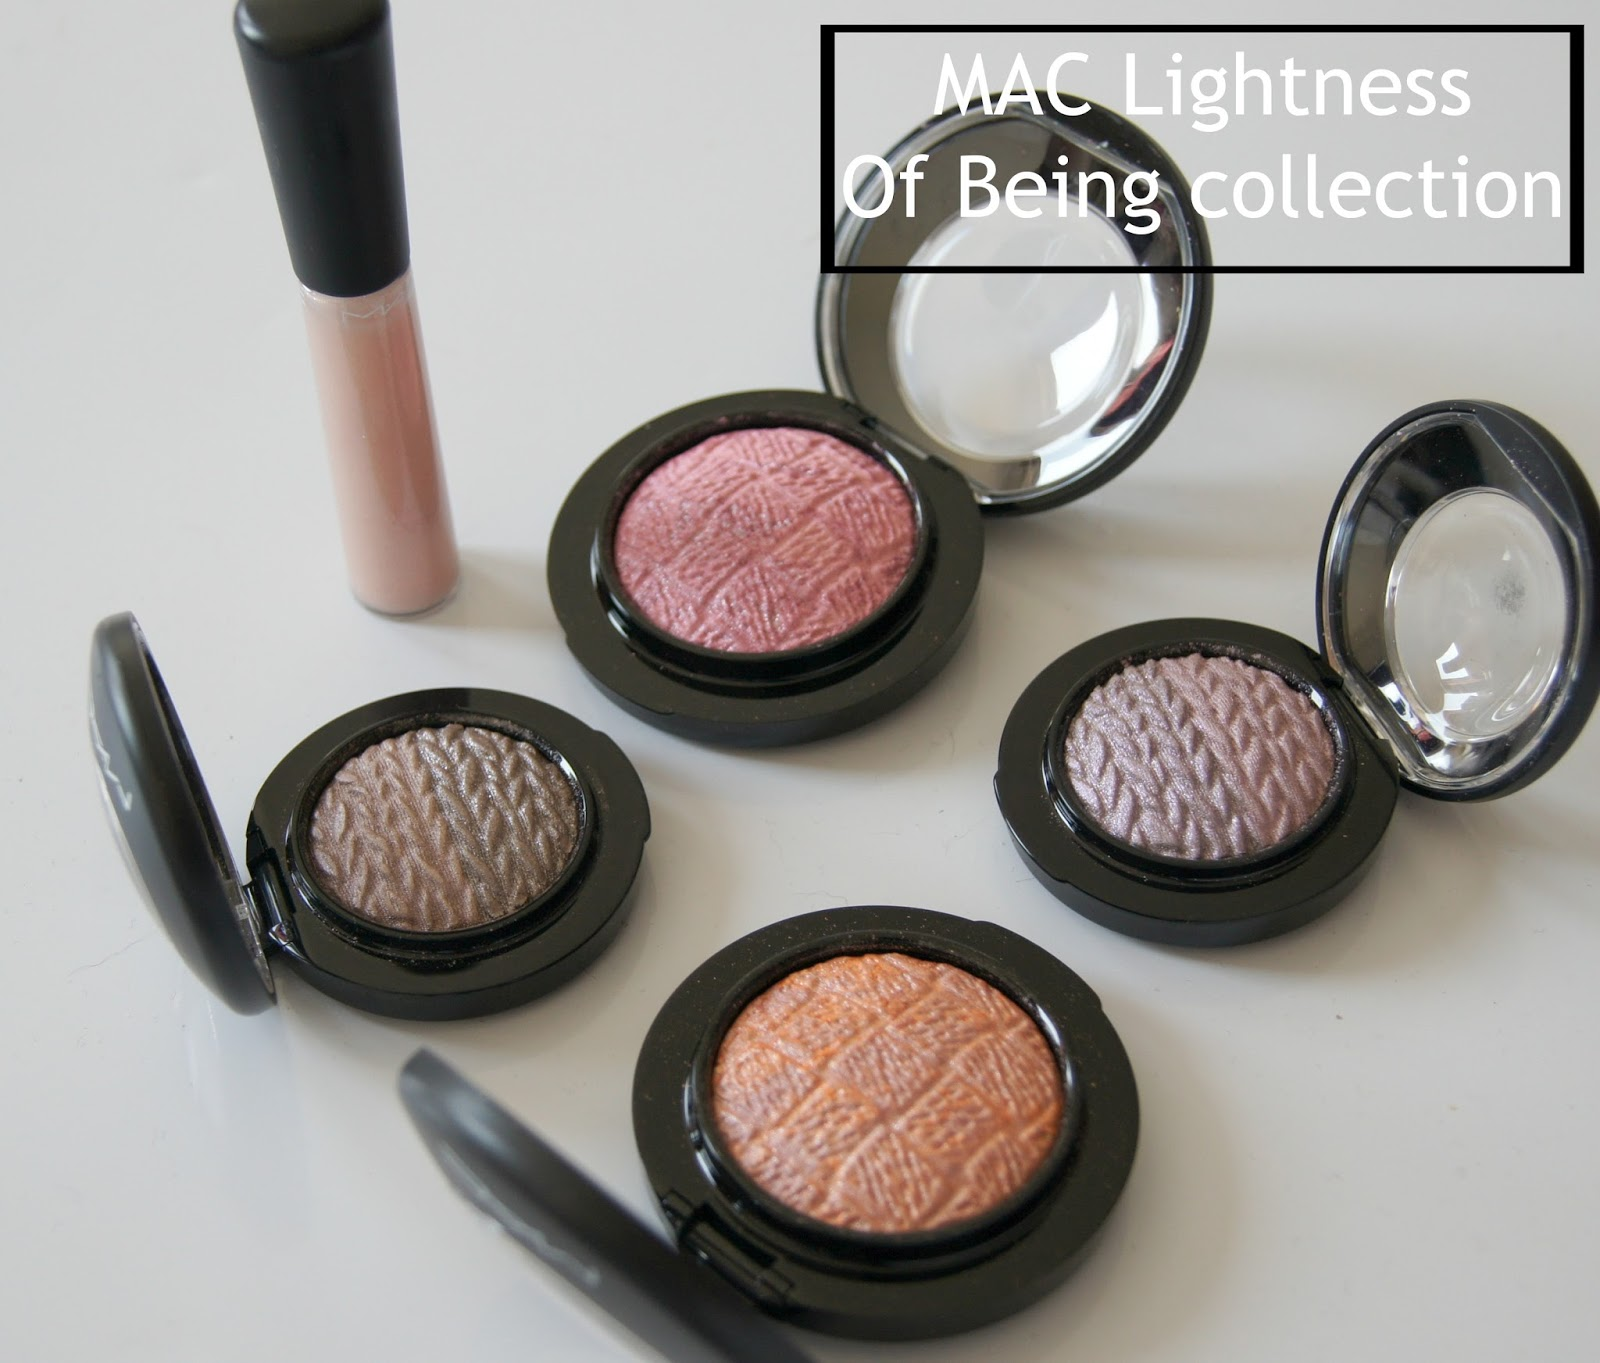 MAC Lightness of Being collection review